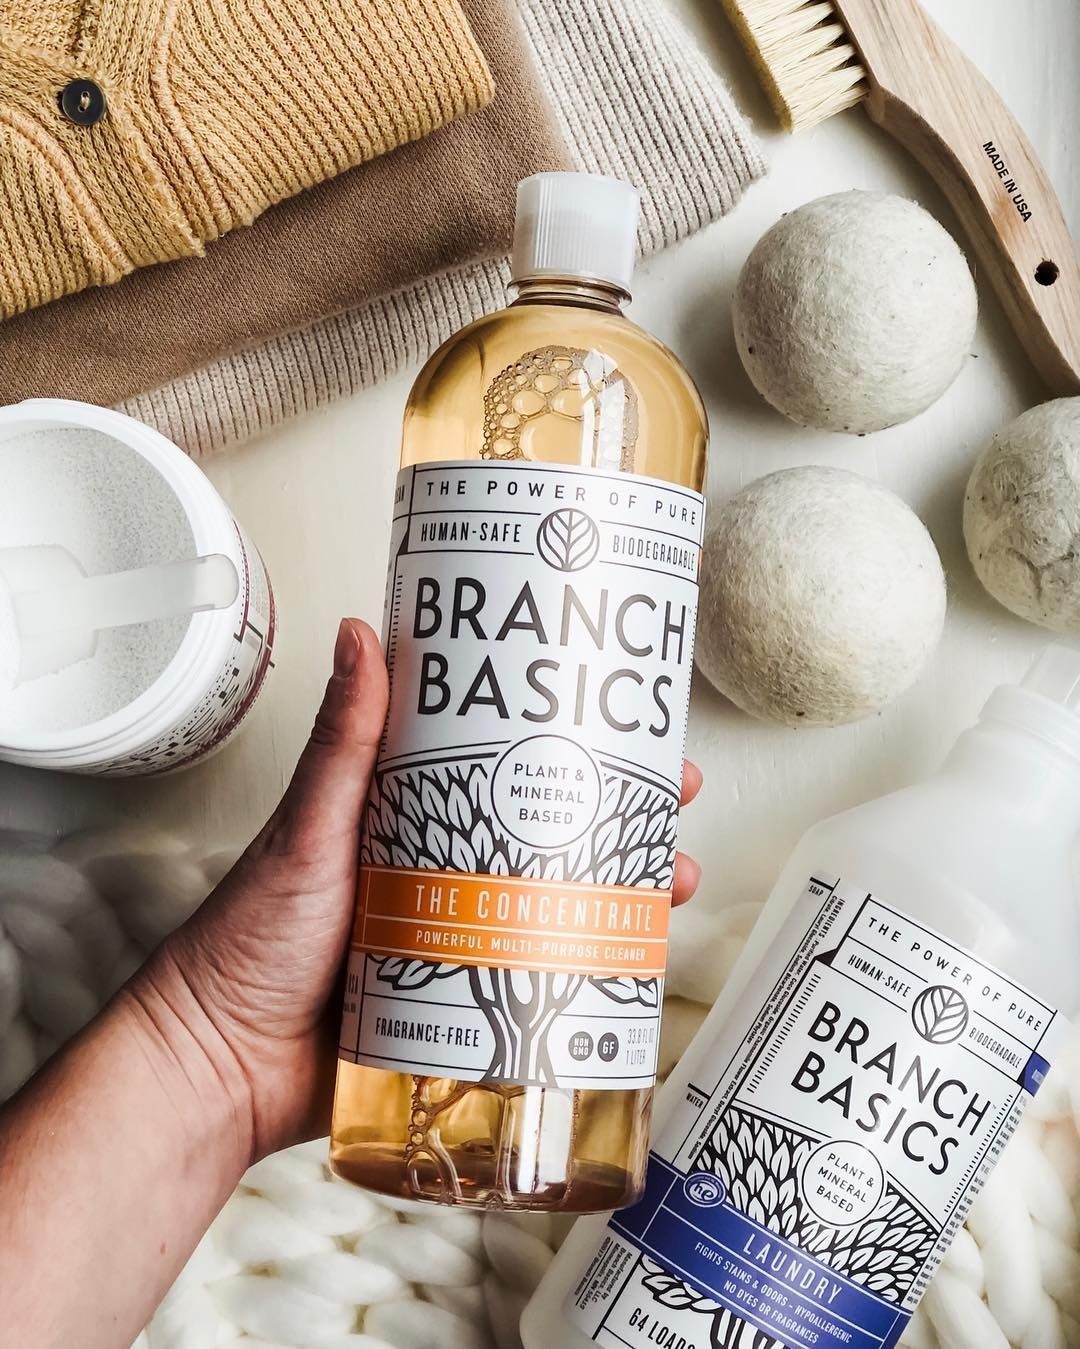 This Concentrate Is Our Laundry Detergent All Purpose Cleaner Fruit And Veggie Wash Stain Re Natural Cleaning Products Fragrance Free Products Branch Basics